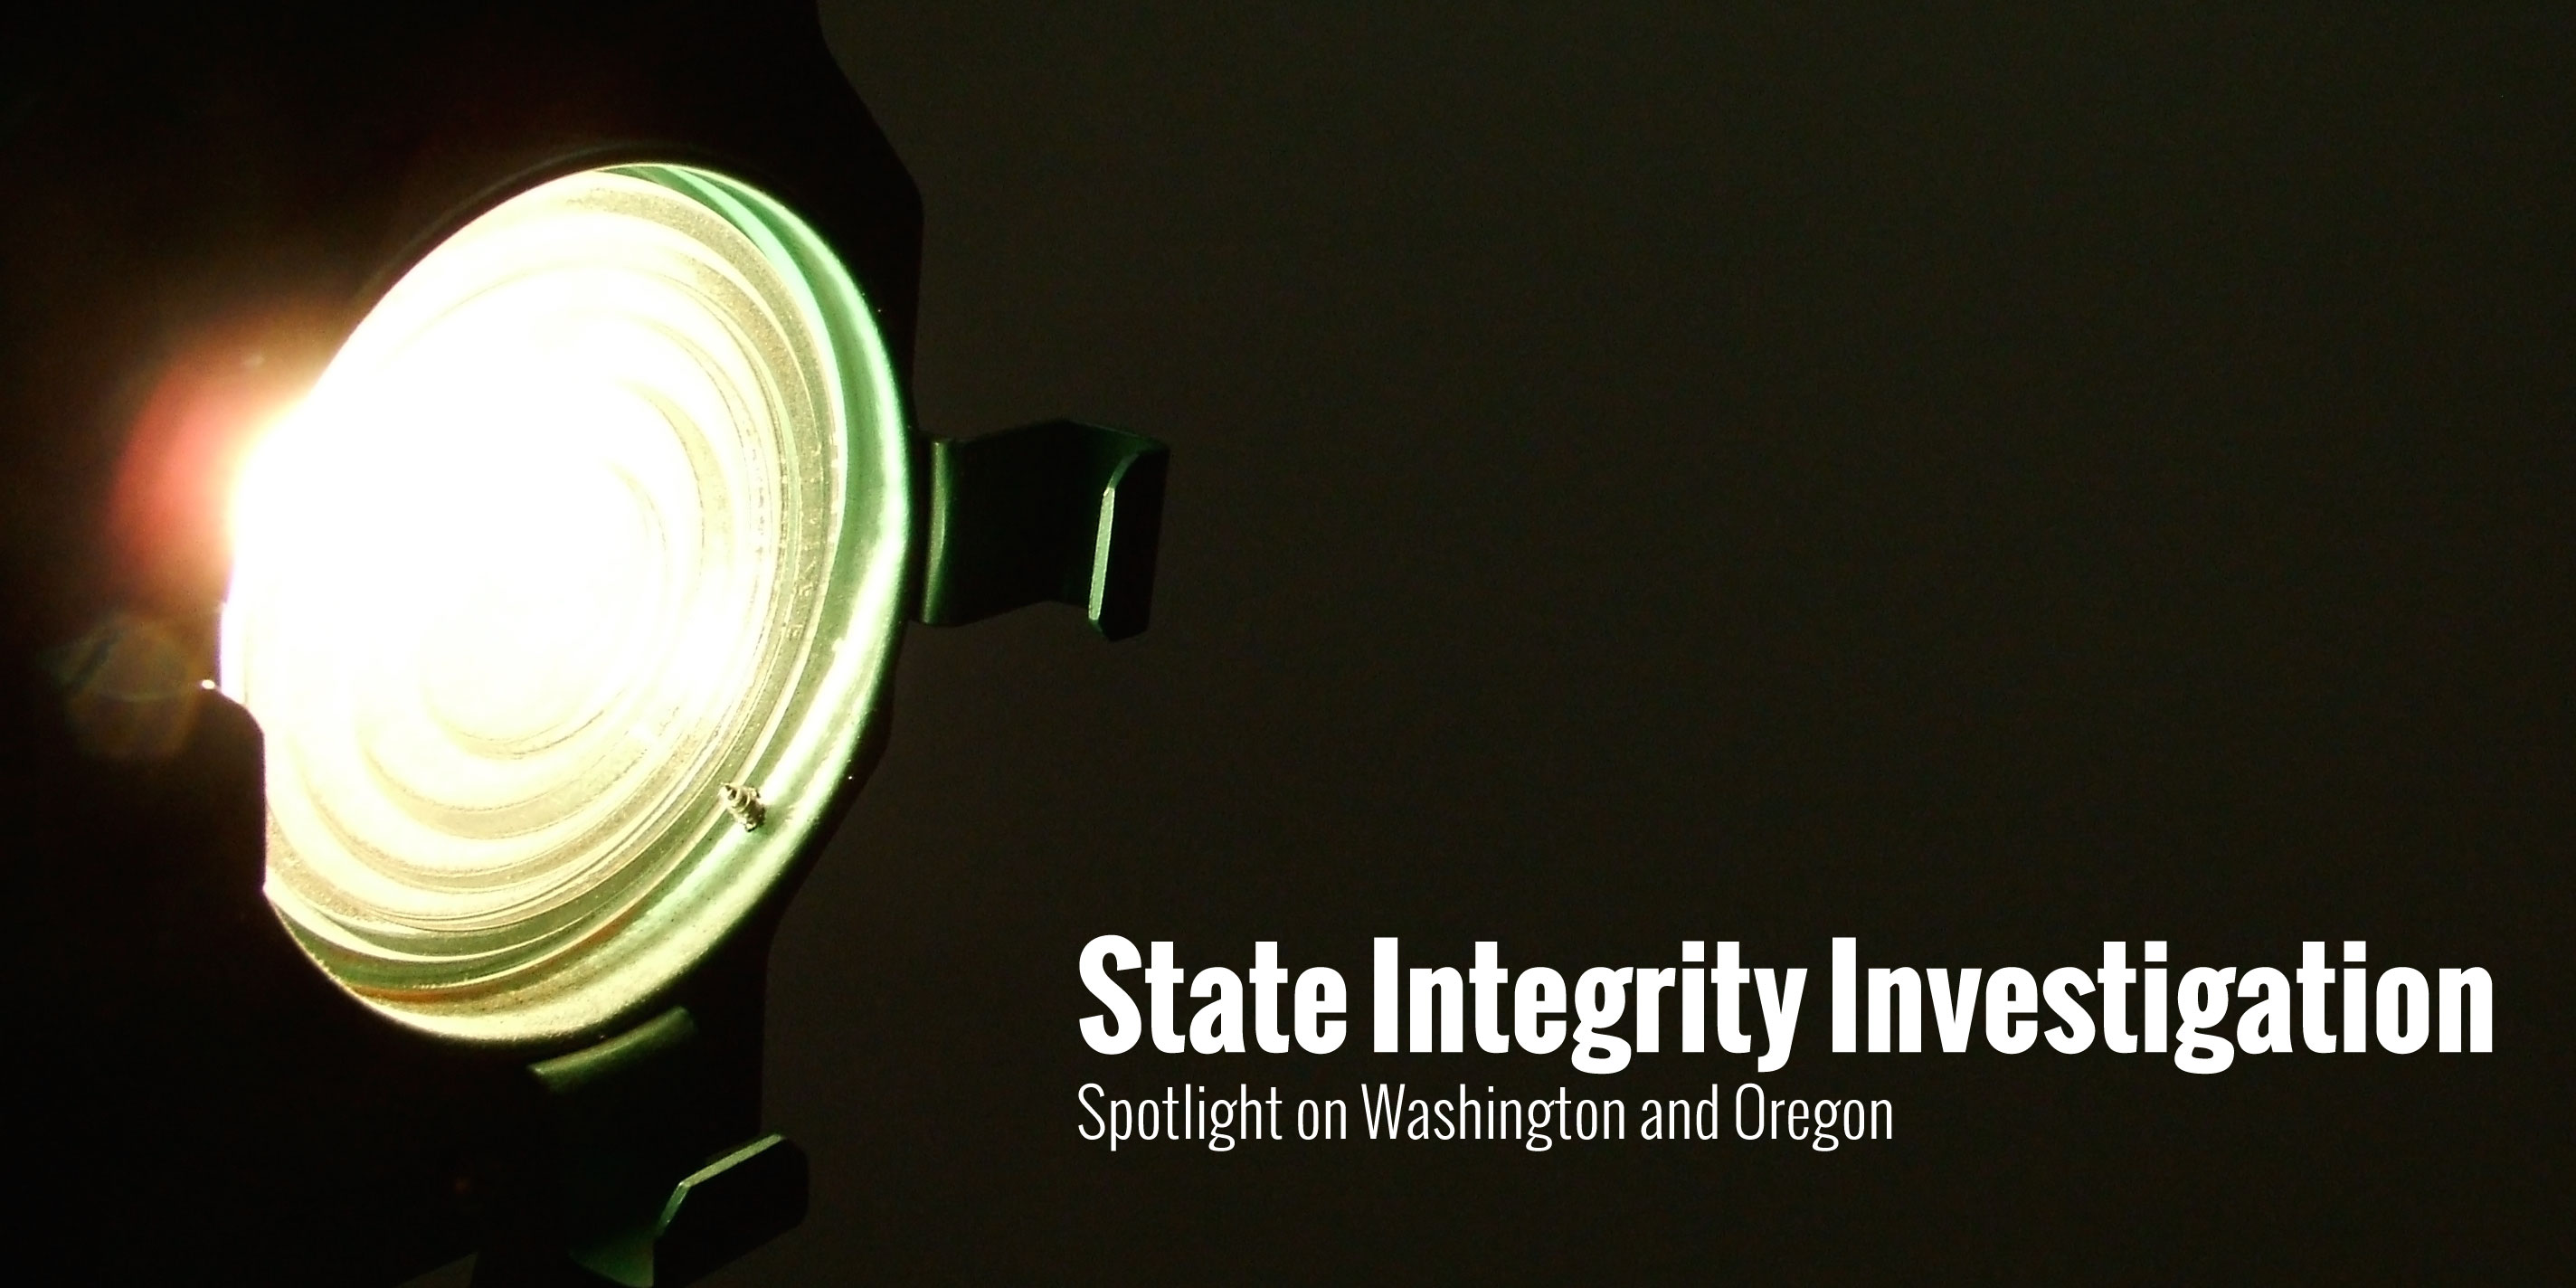 Washington and Oregon get low grades on integrity